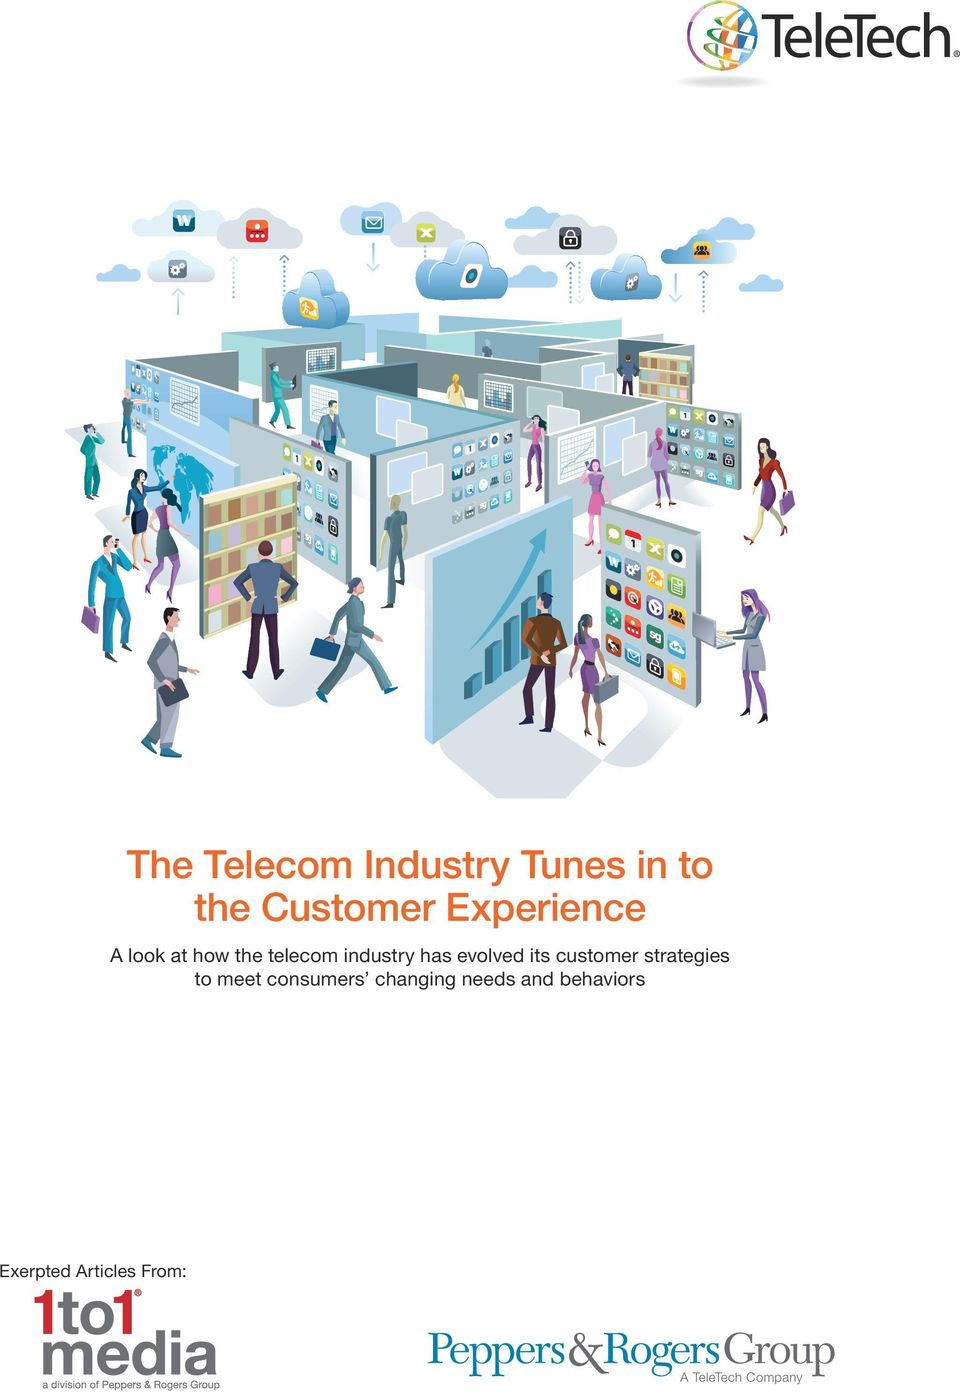 evolved its customer strategies to meet consumers